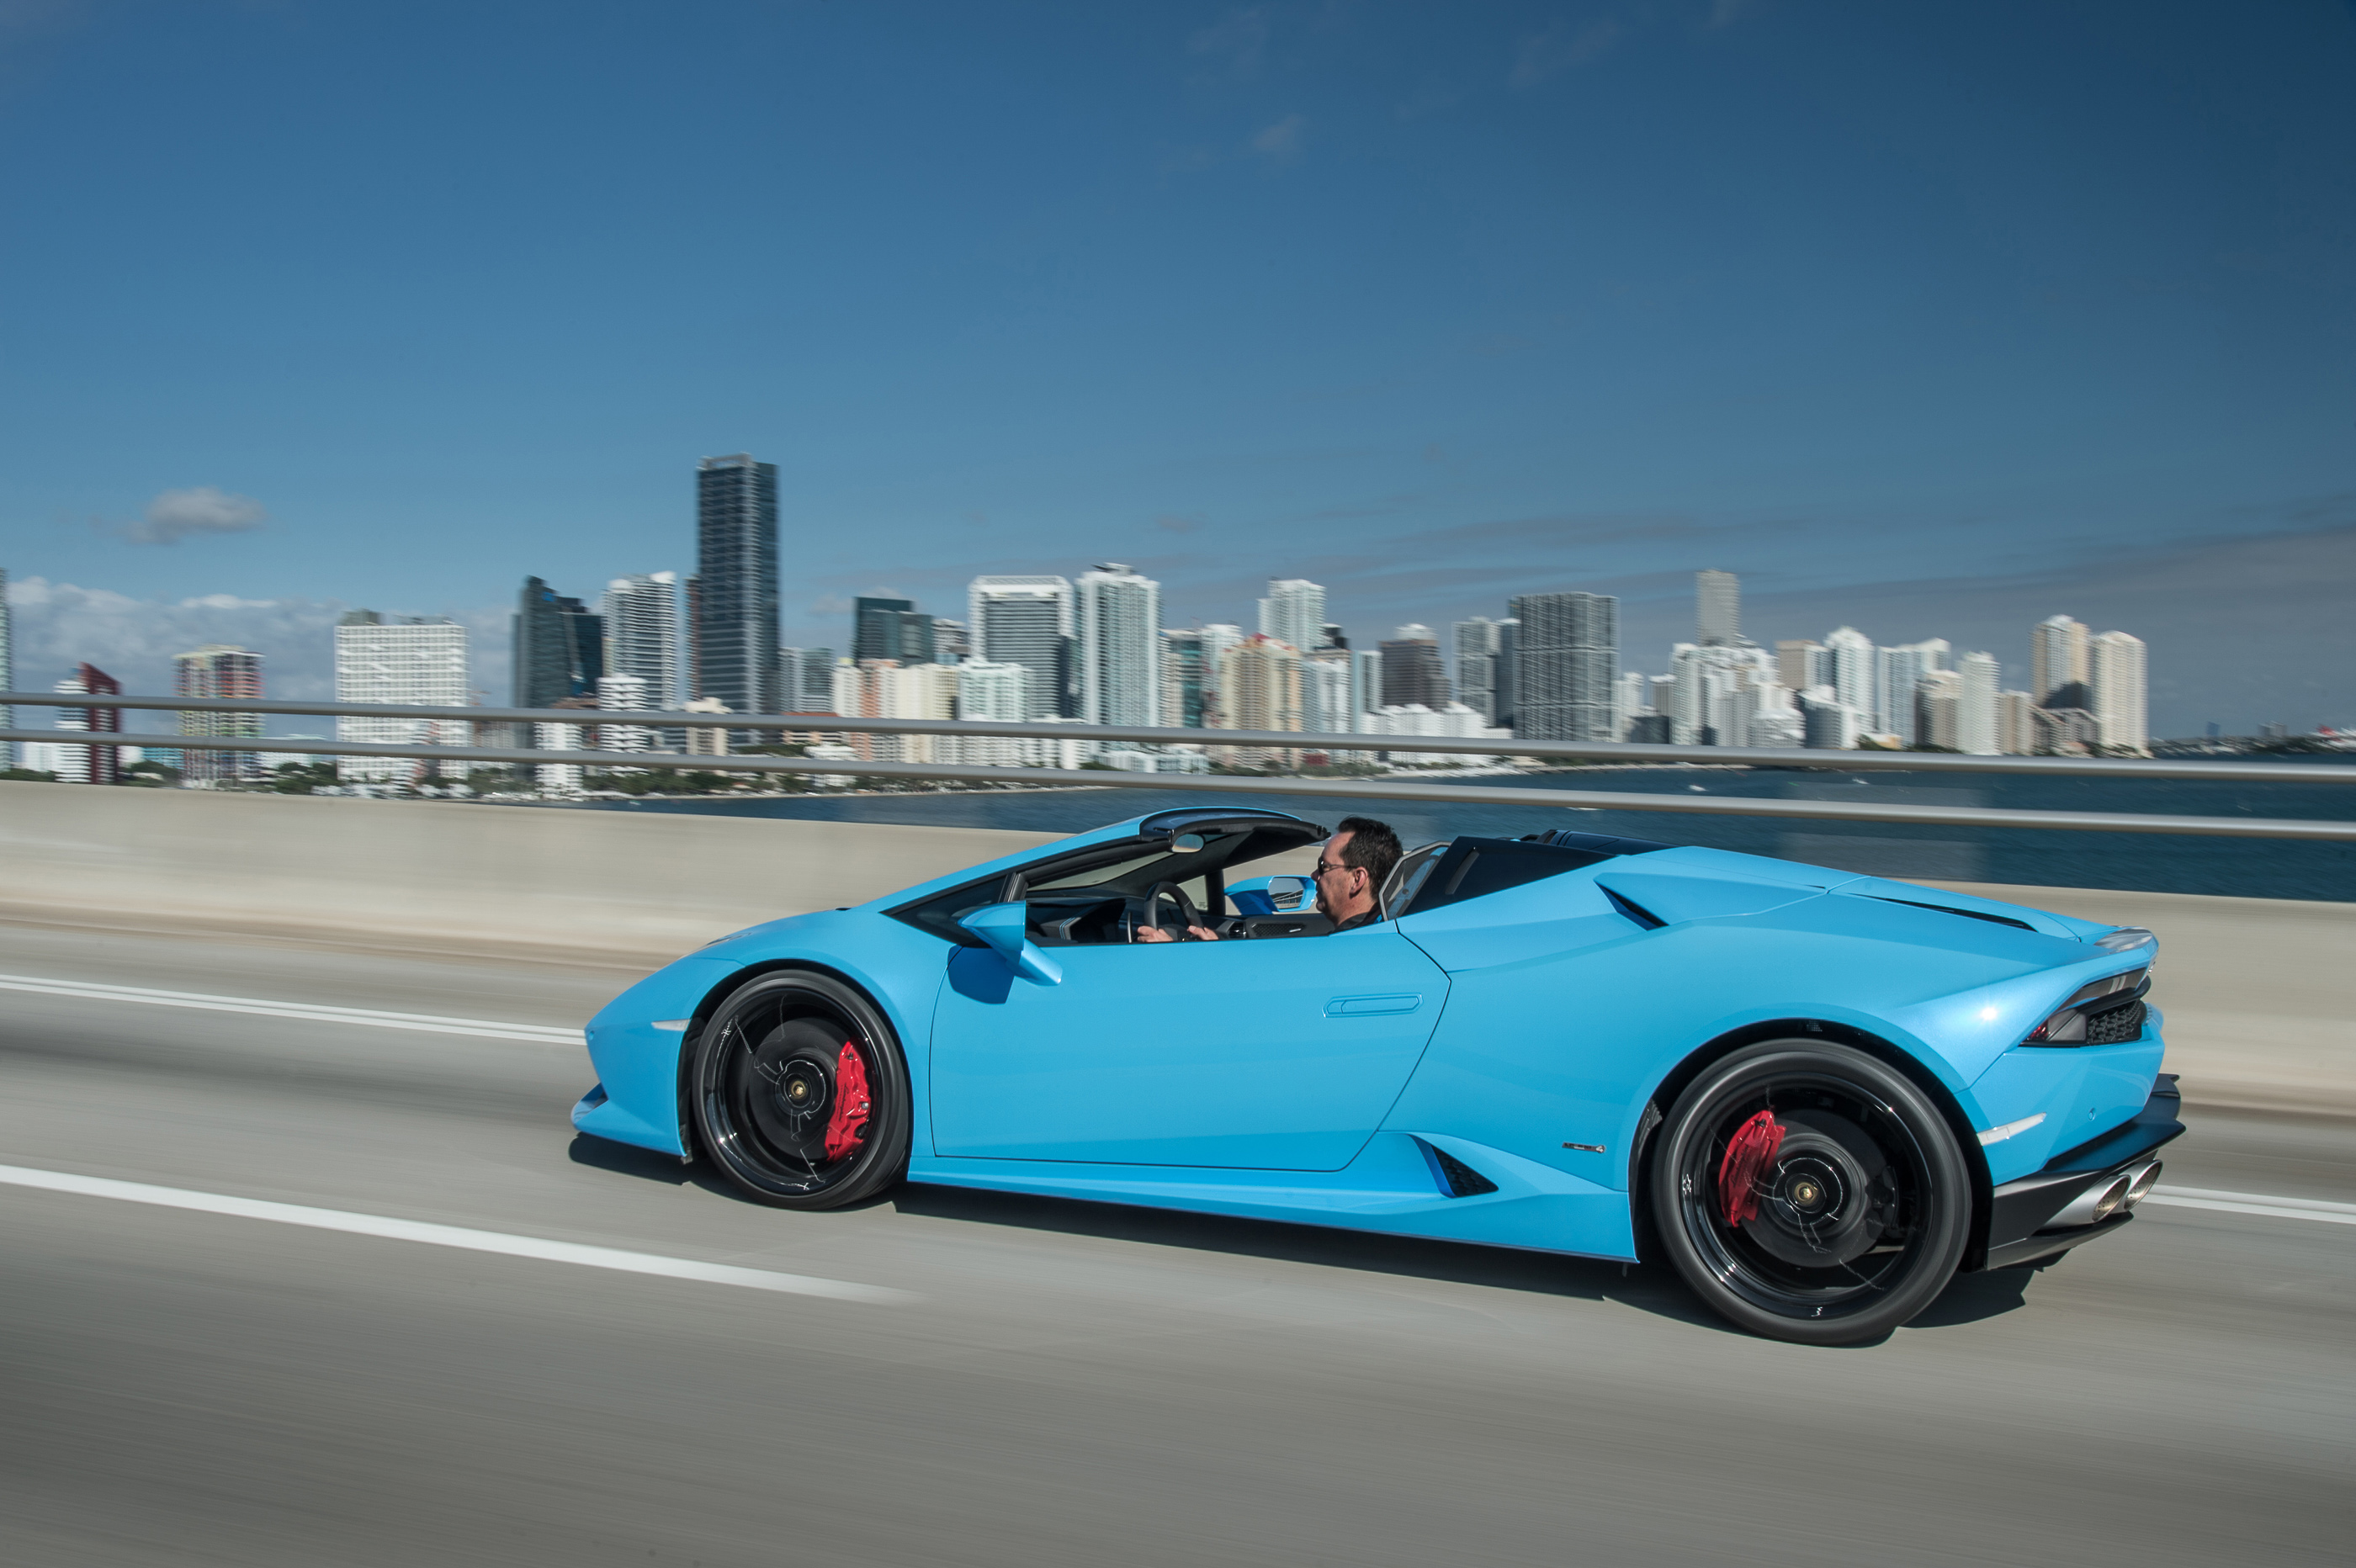 2016 lamborghini huracan lp610 4 spyder review. Black Bedroom Furniture Sets. Home Design Ideas